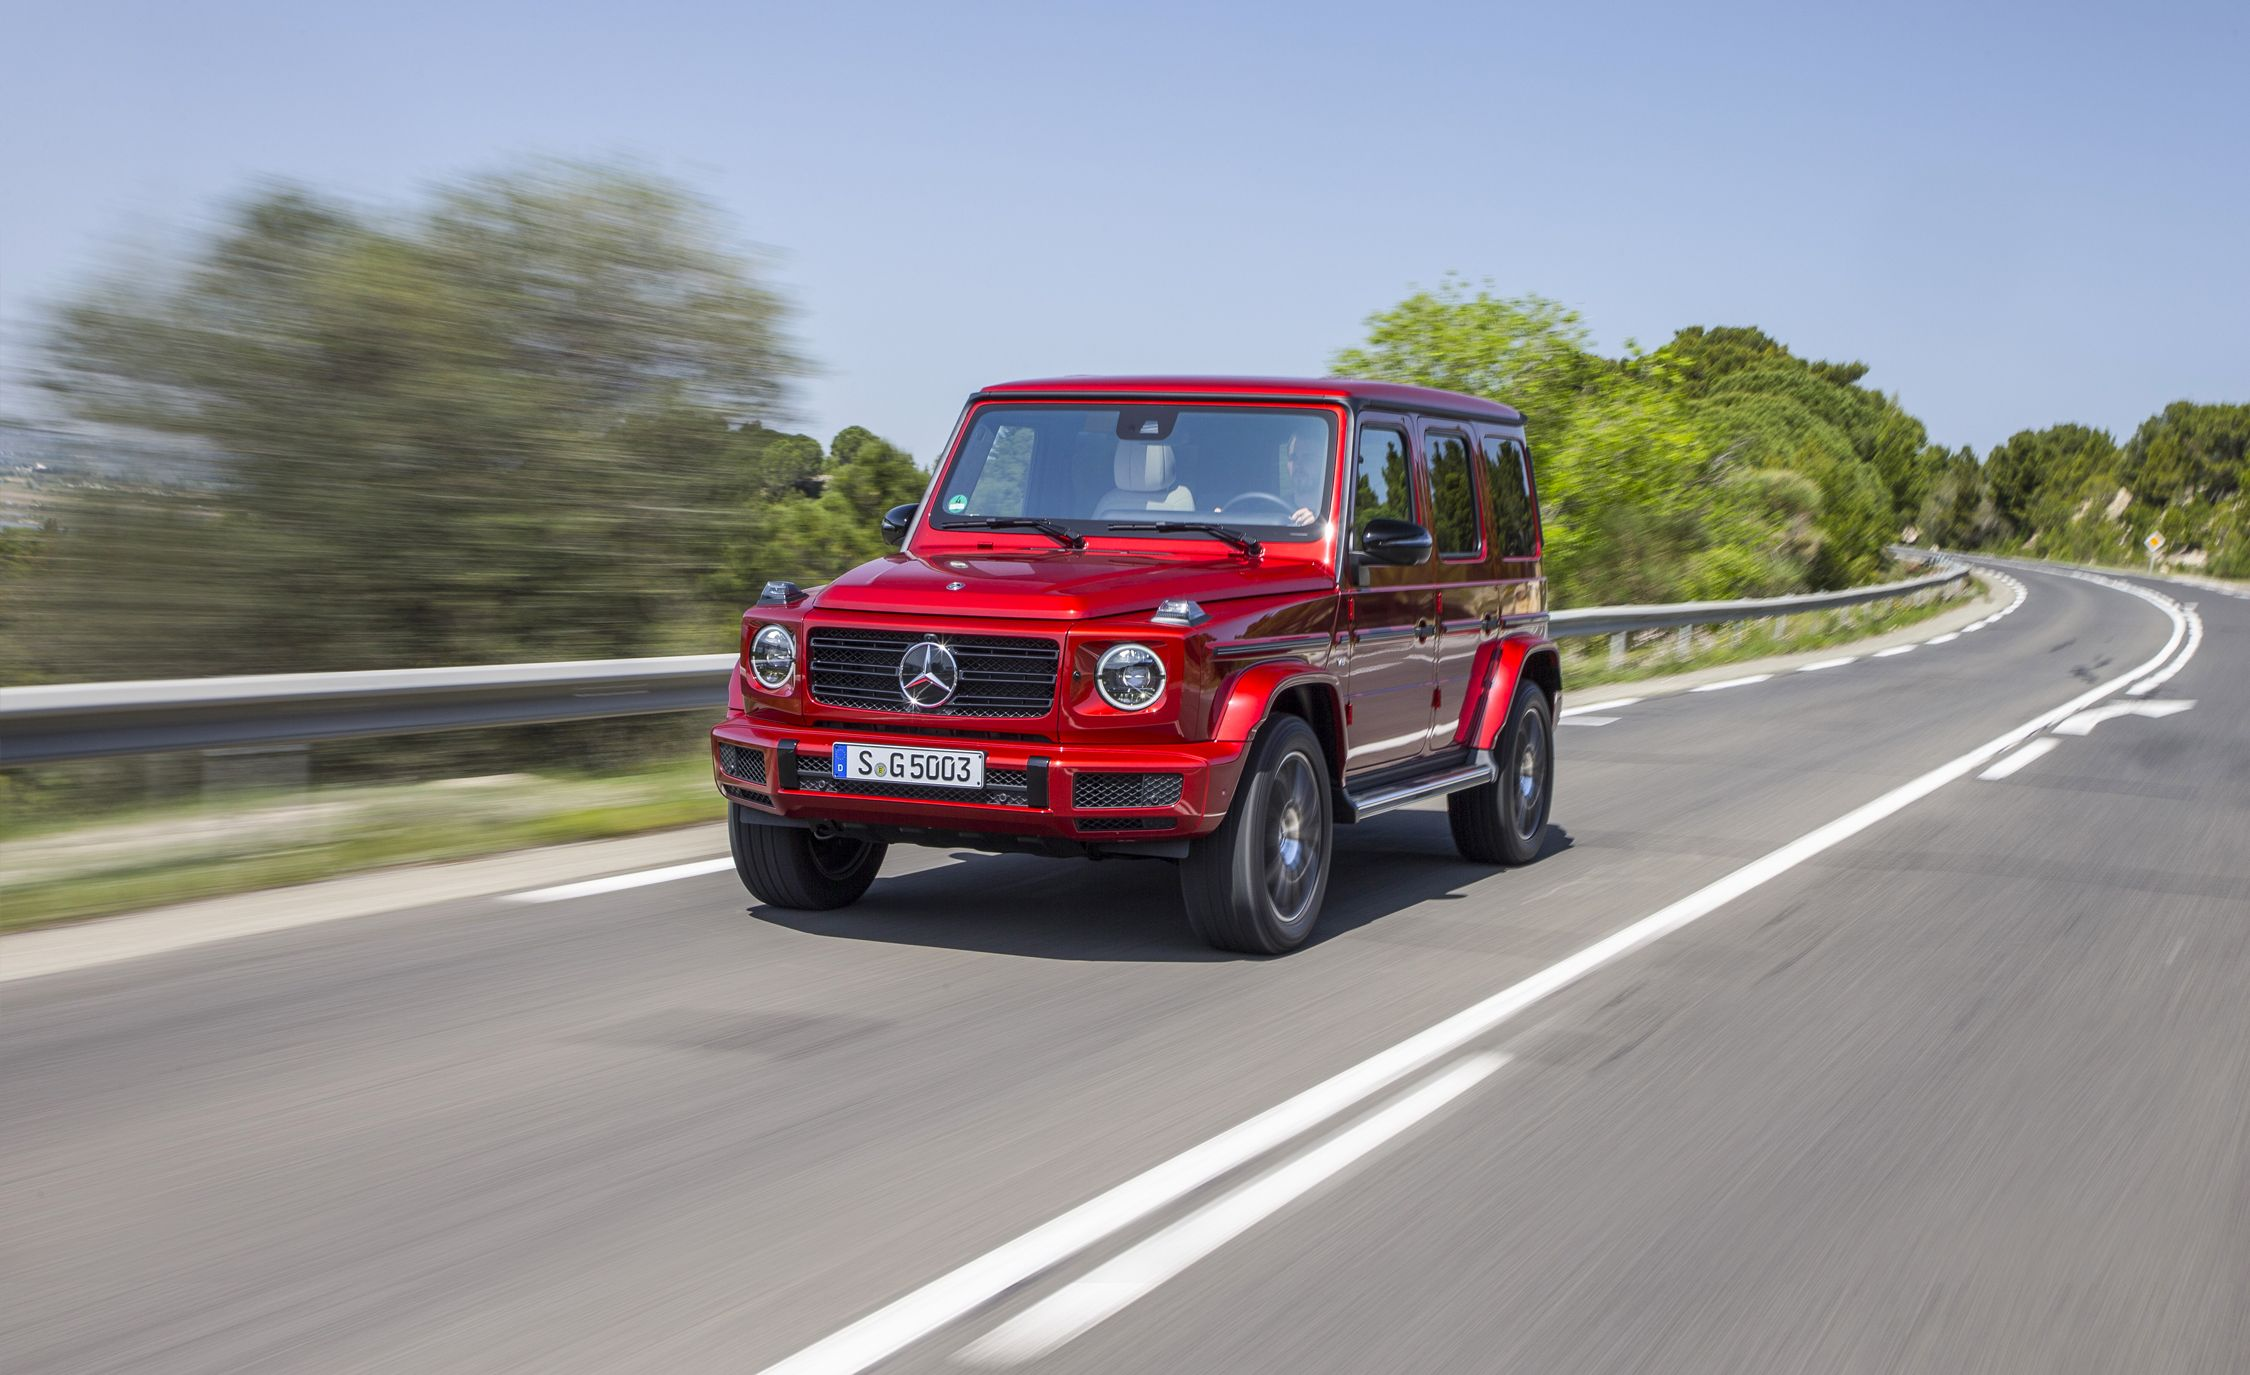 2019 G Wagen >> Mercedes-Benz G-class Reviews | Mercedes-Benz G-class Price, Photos, and Specs | Car and Driver